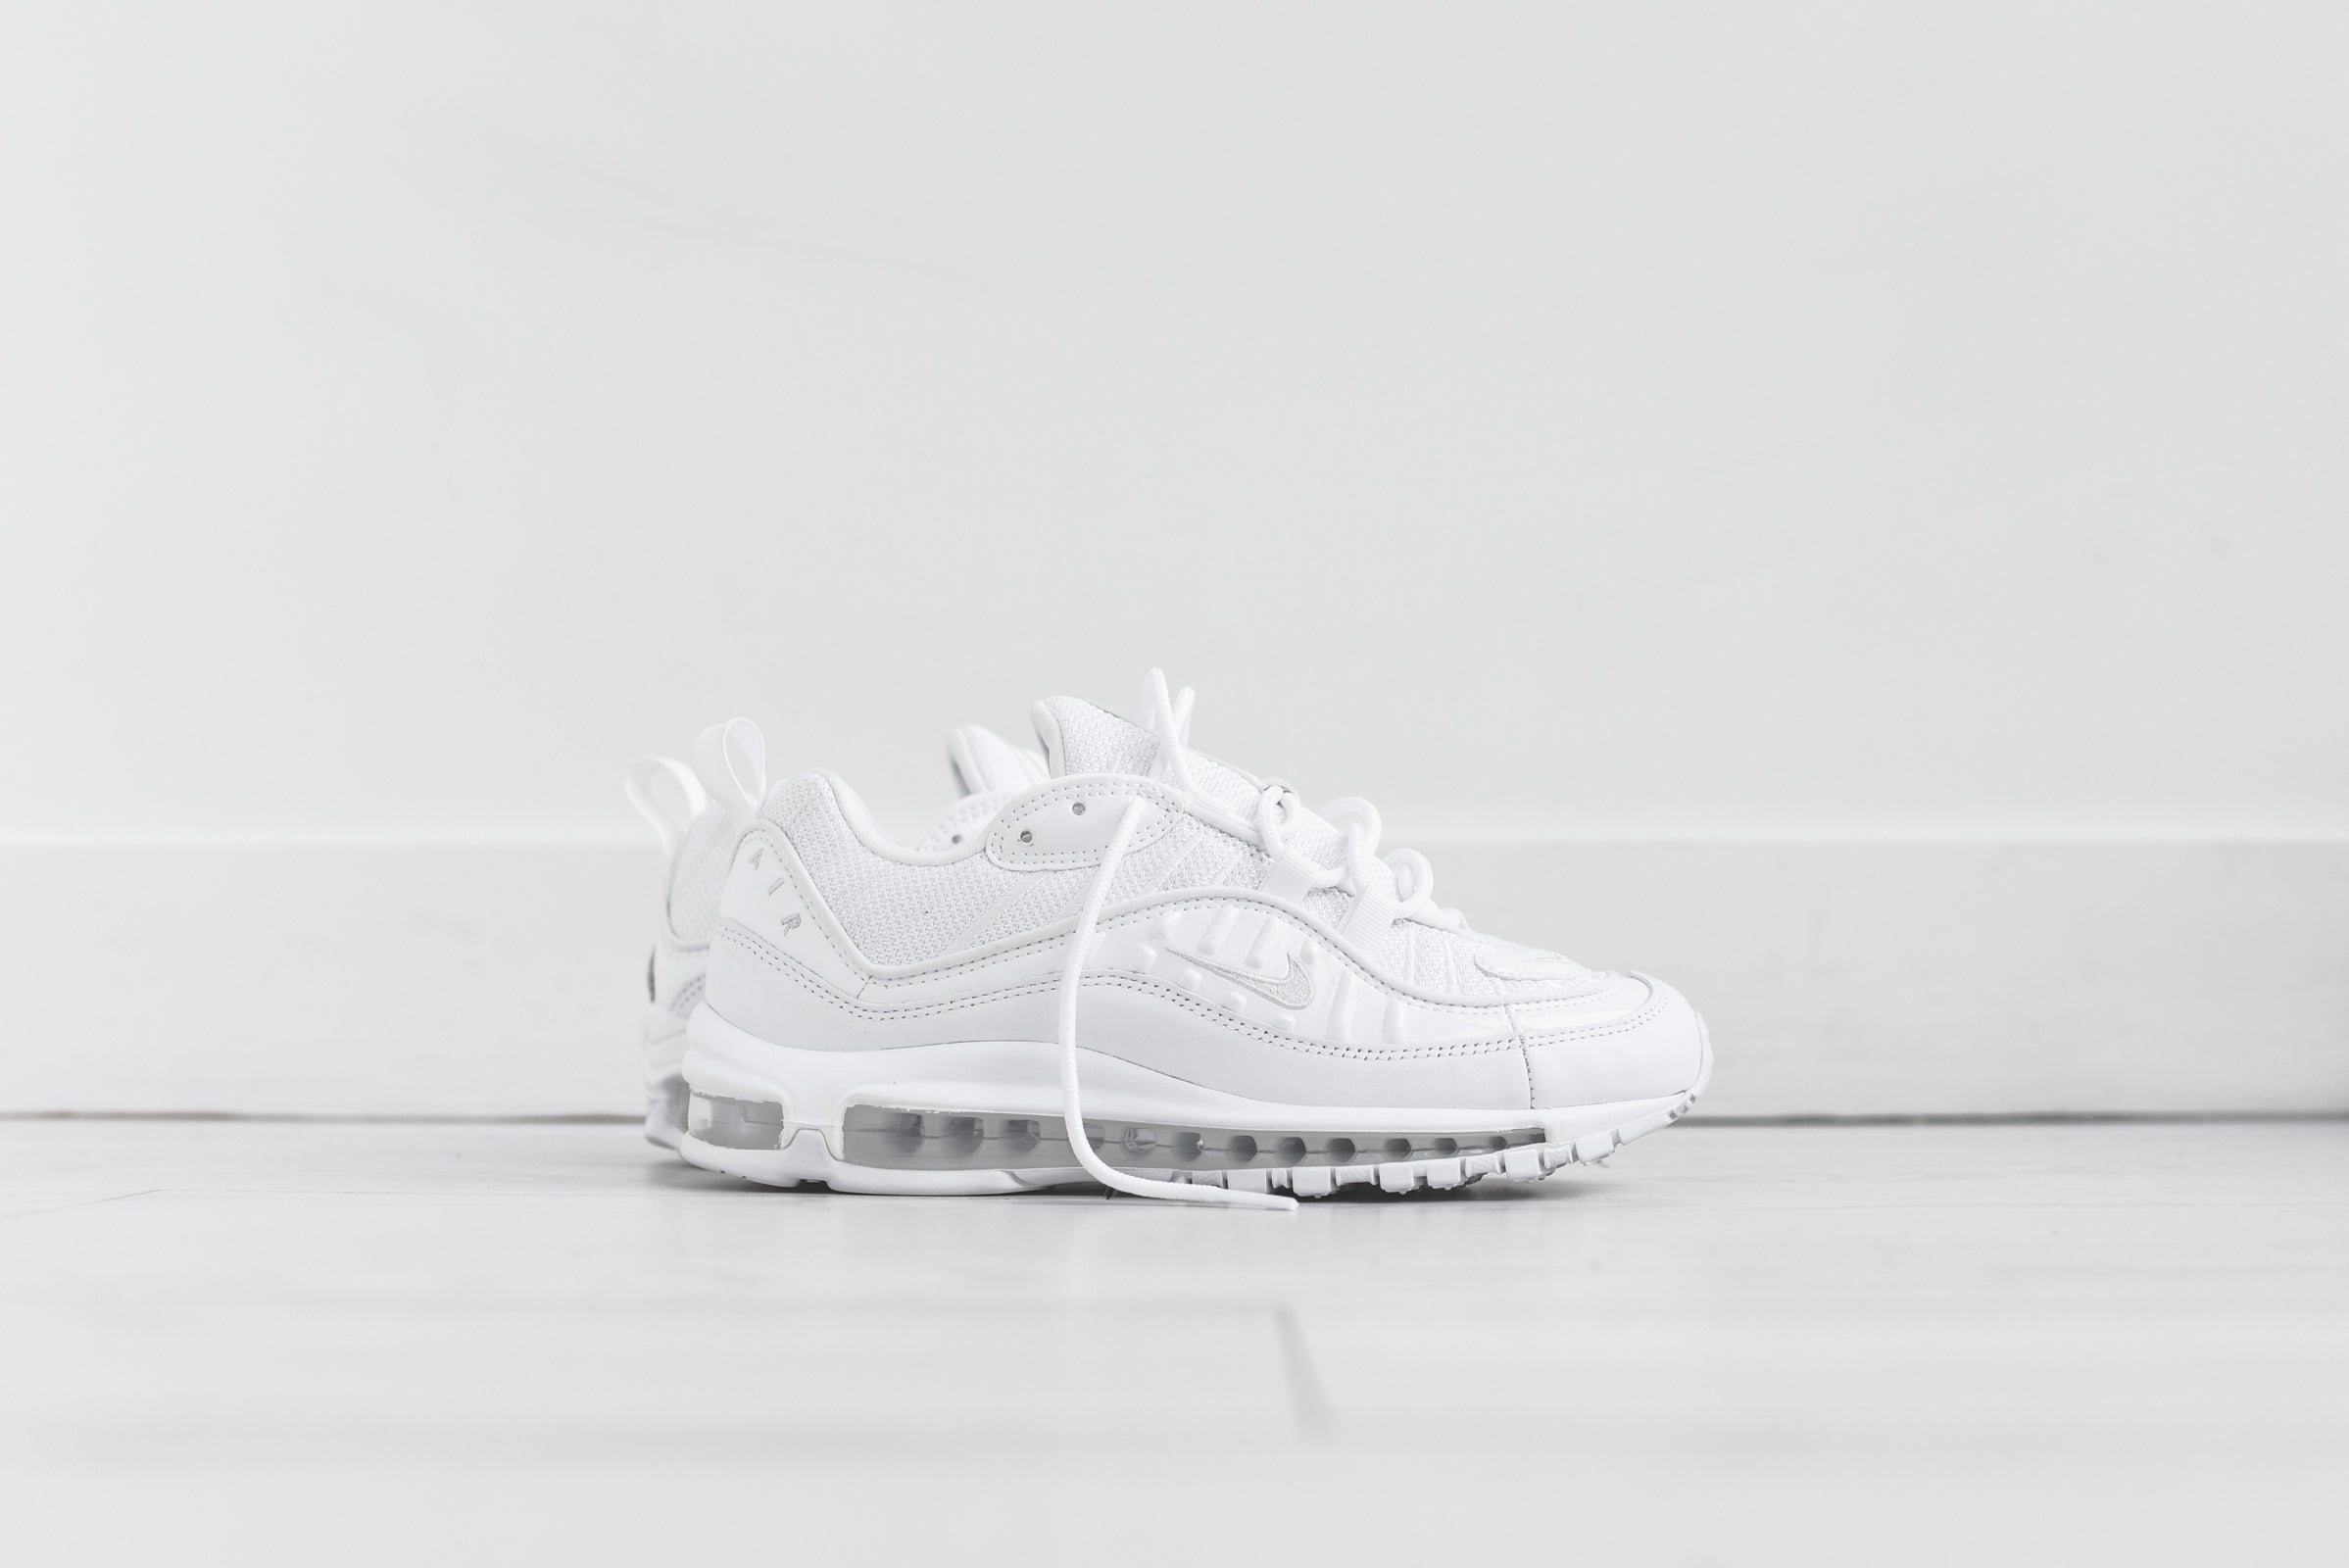 Nike Air Max 98 - Triple White u2013 Kith